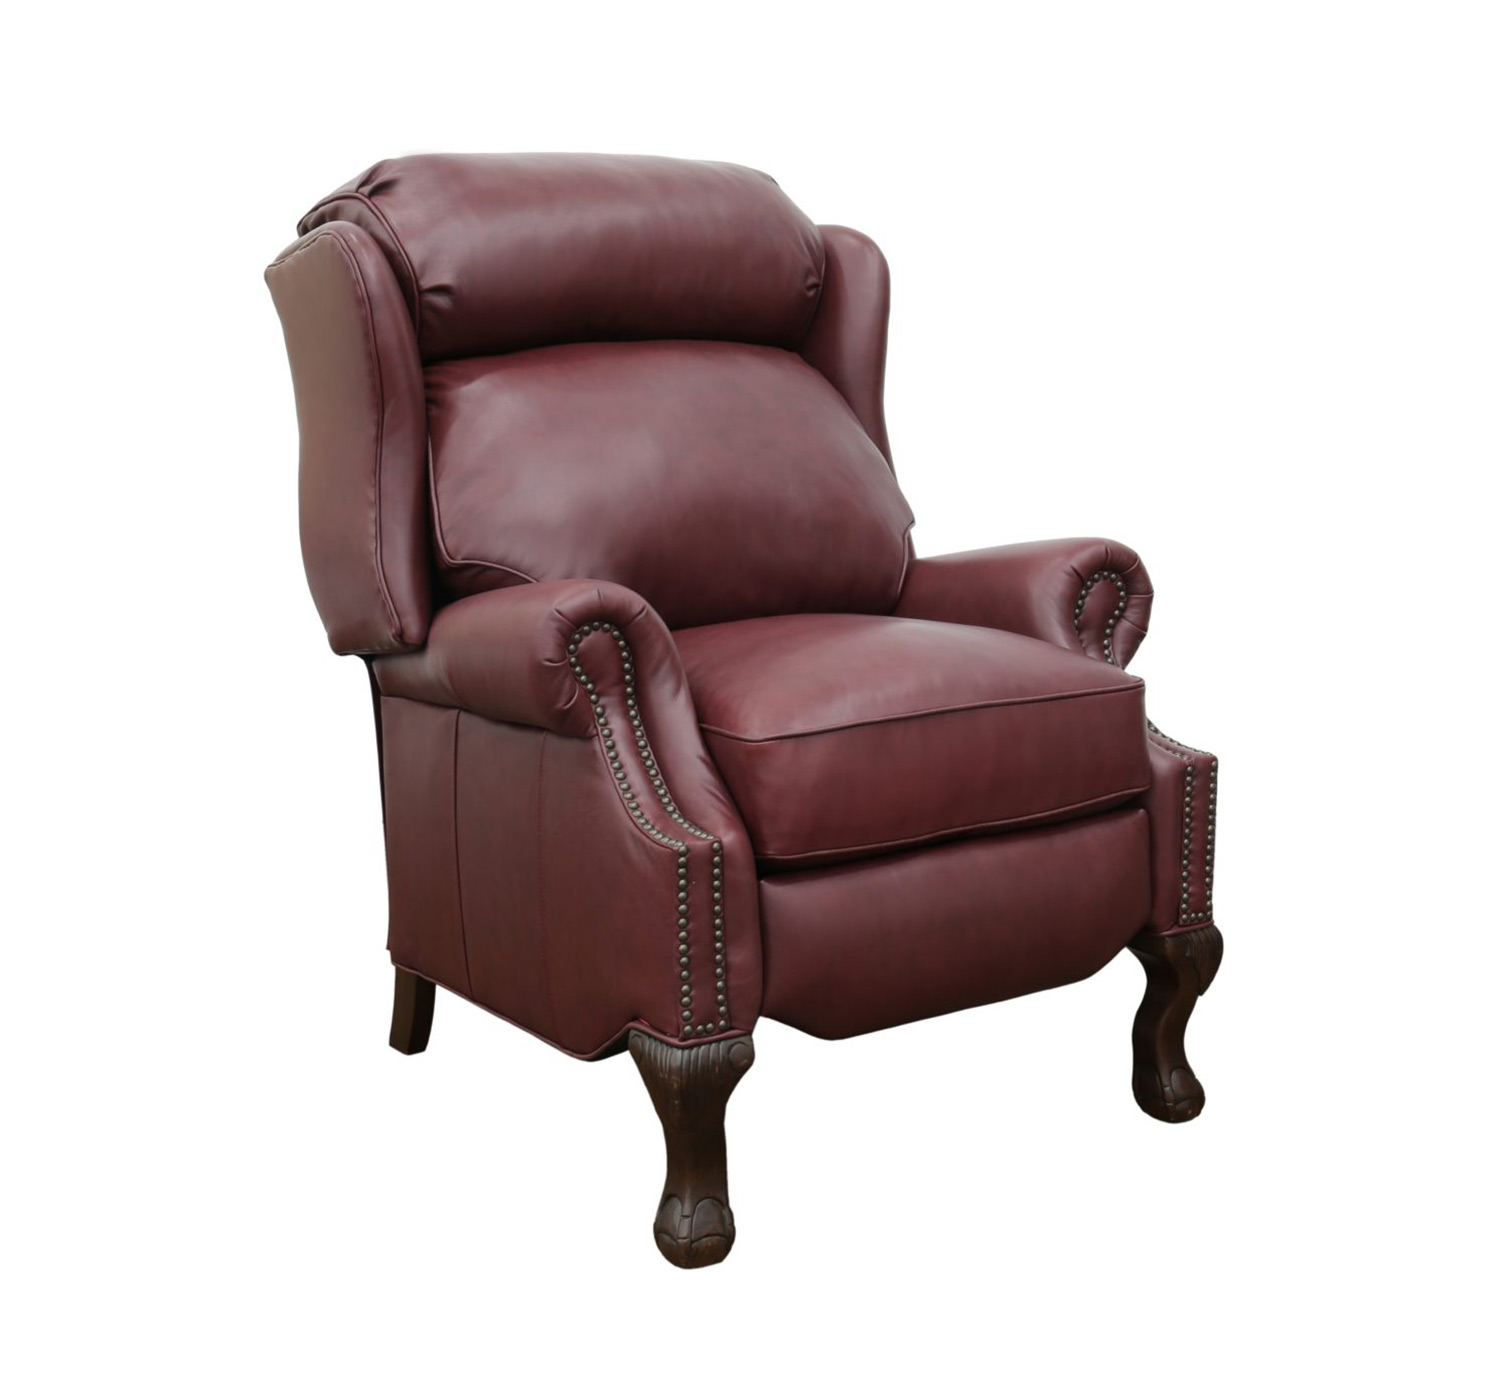 Barcalounger Danbury Recliner Chair - Shoreham Wine/all leather